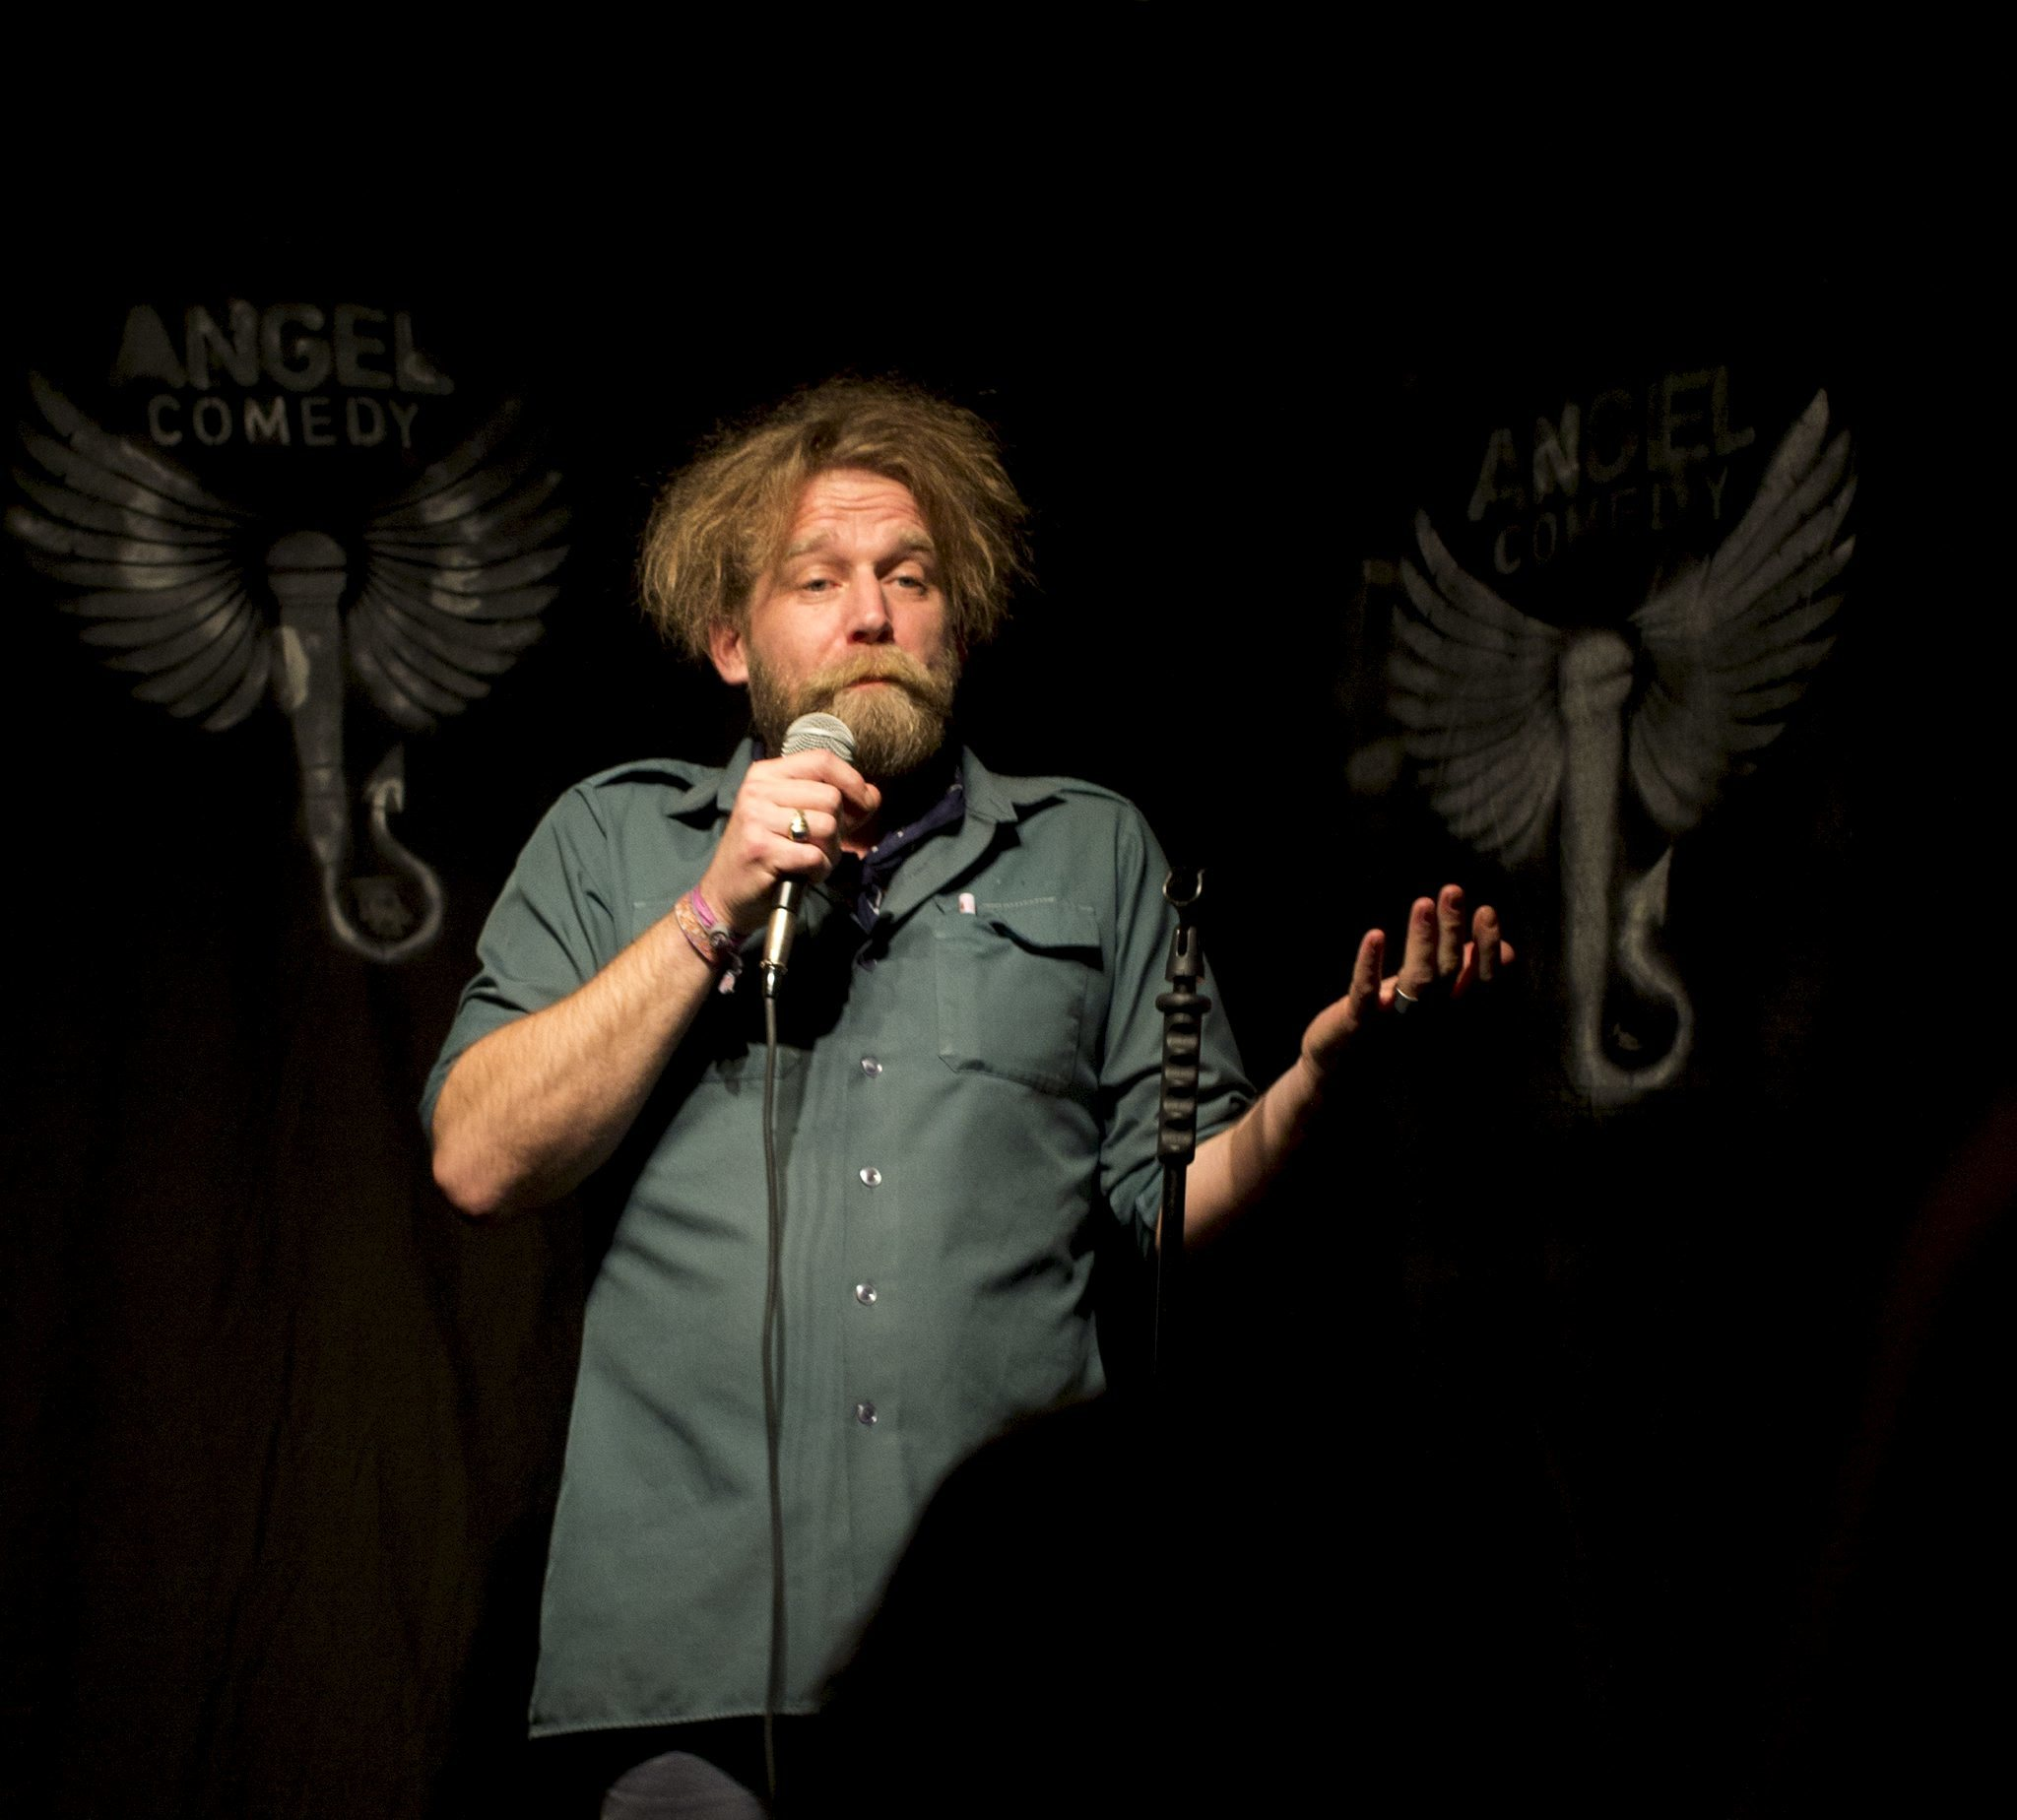 angel comedy tony law